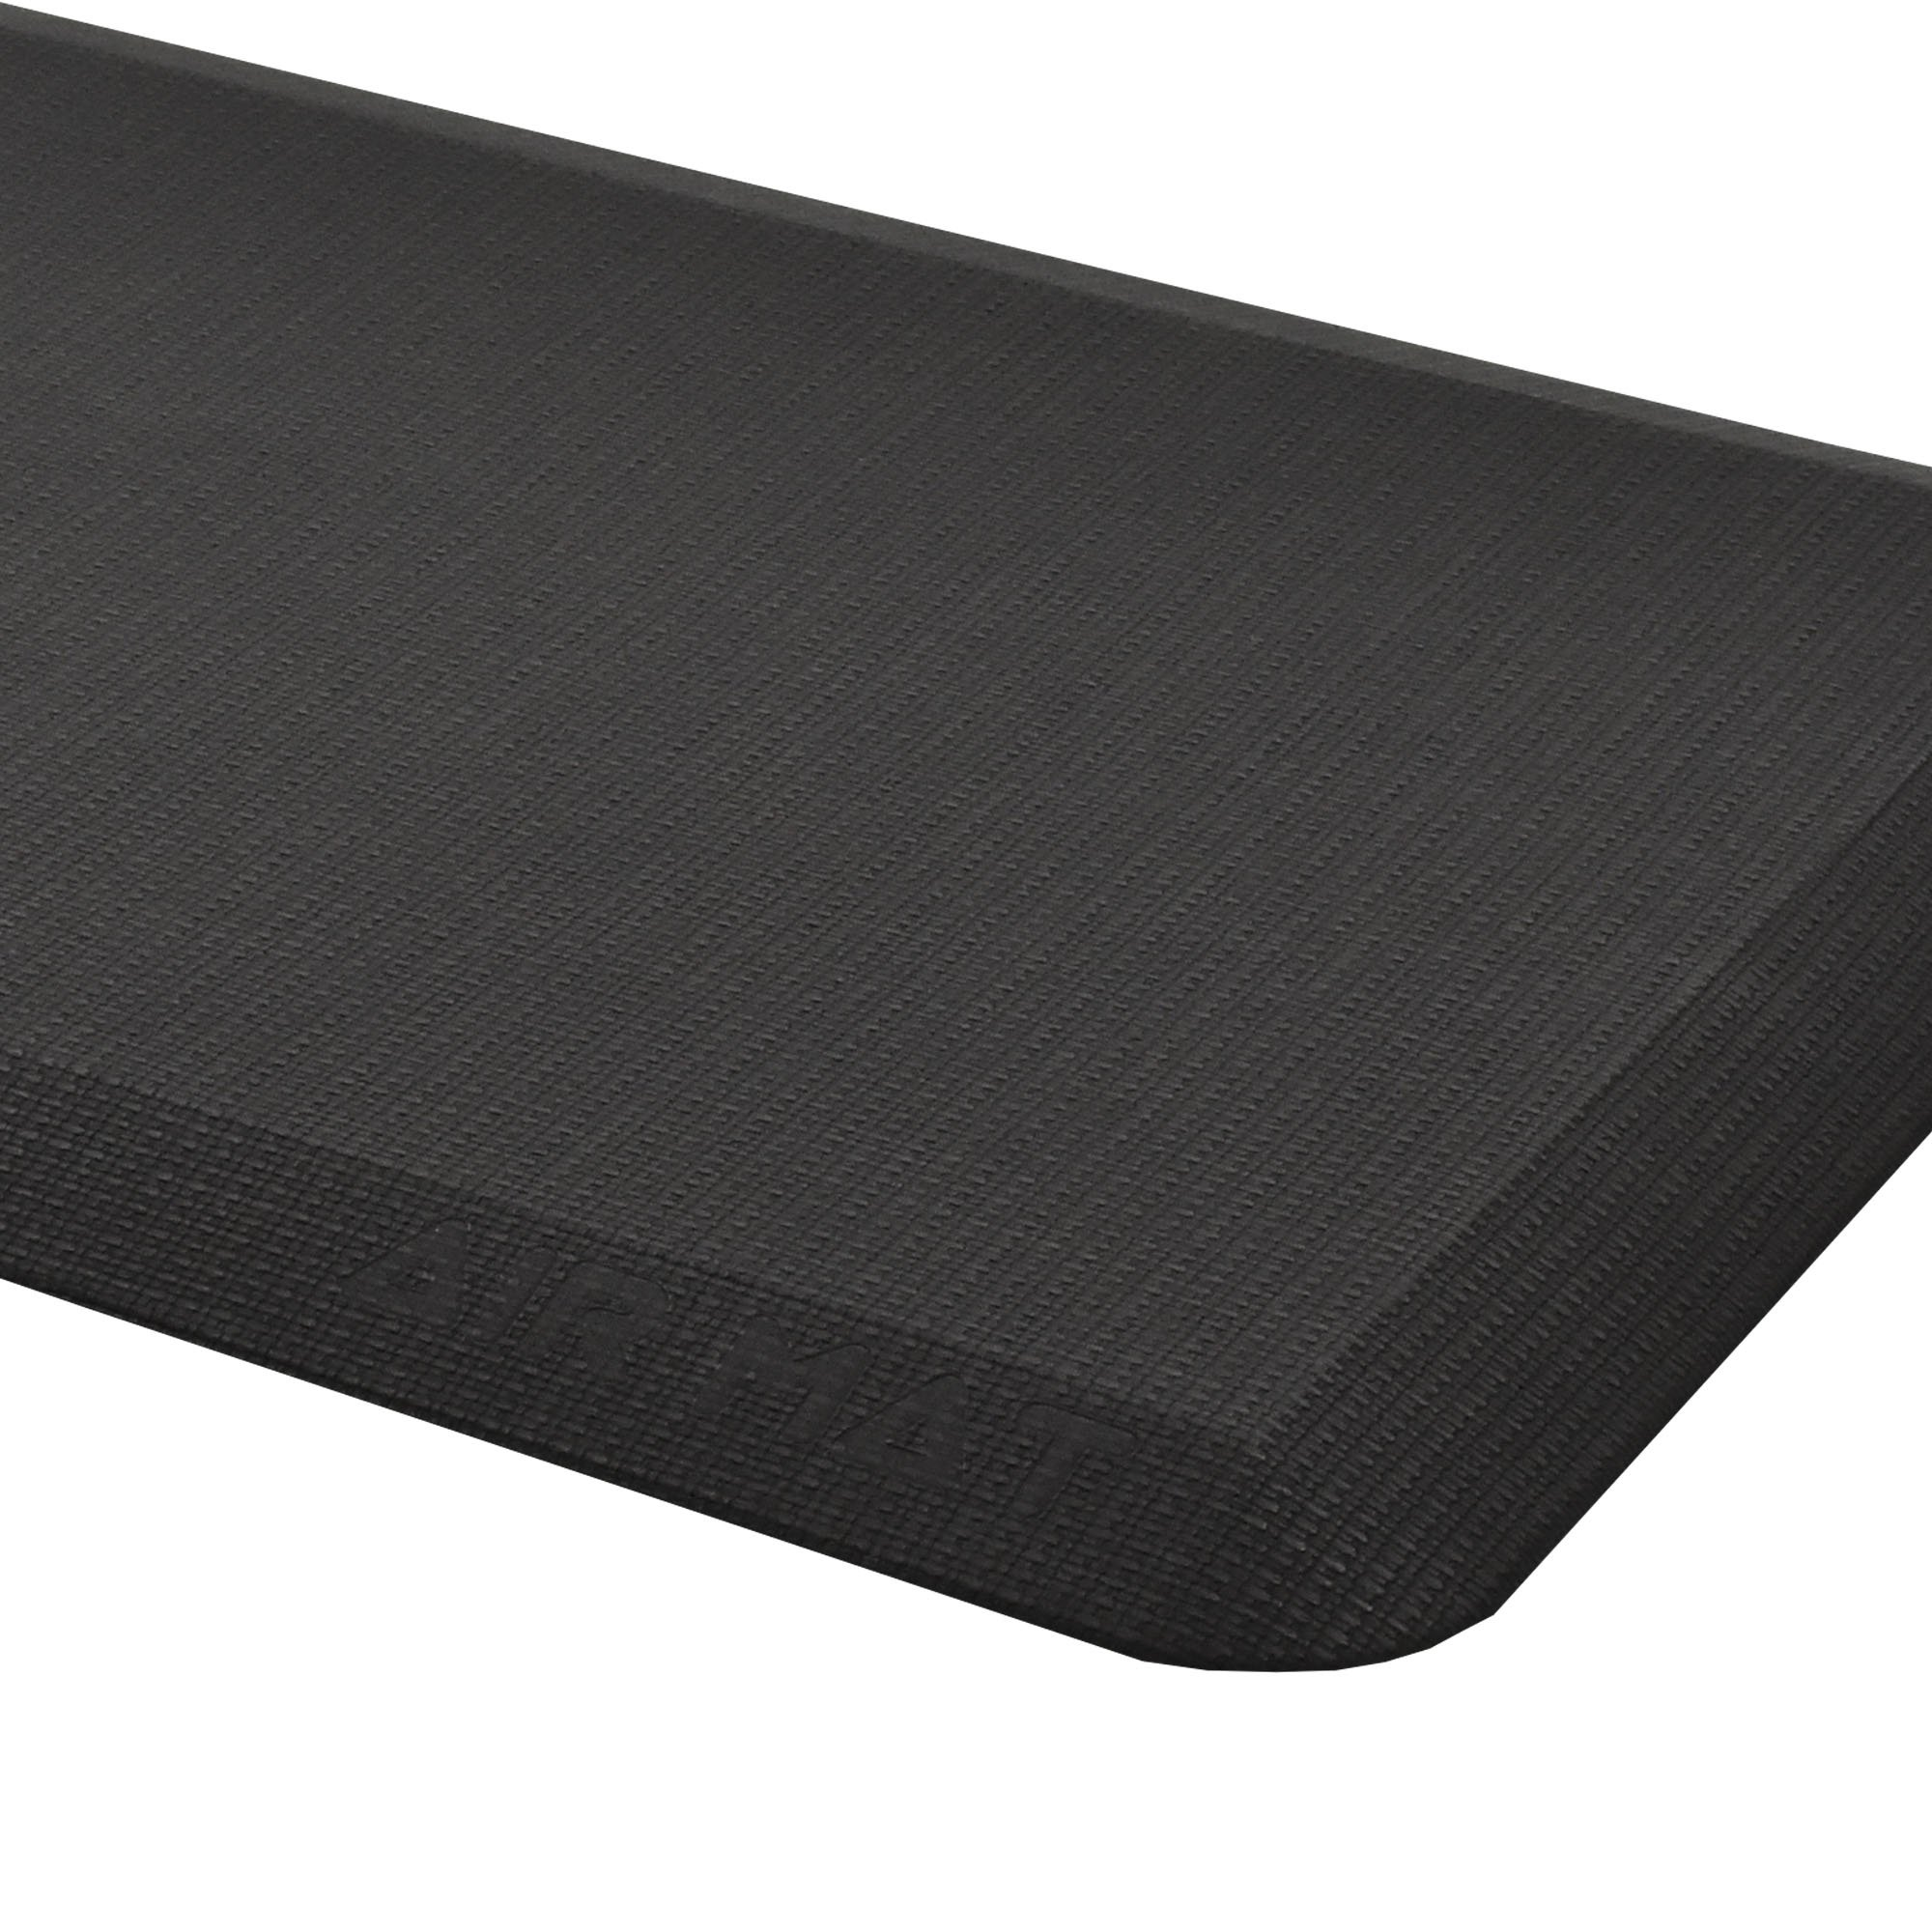 AirMat Anti Fatigue Comfort Mat for Kitchen and Standing Desk. Premium 3/4'' cushioned non skid floor rug, Non Toxic and ergonomically design (20x39'') Matte Black